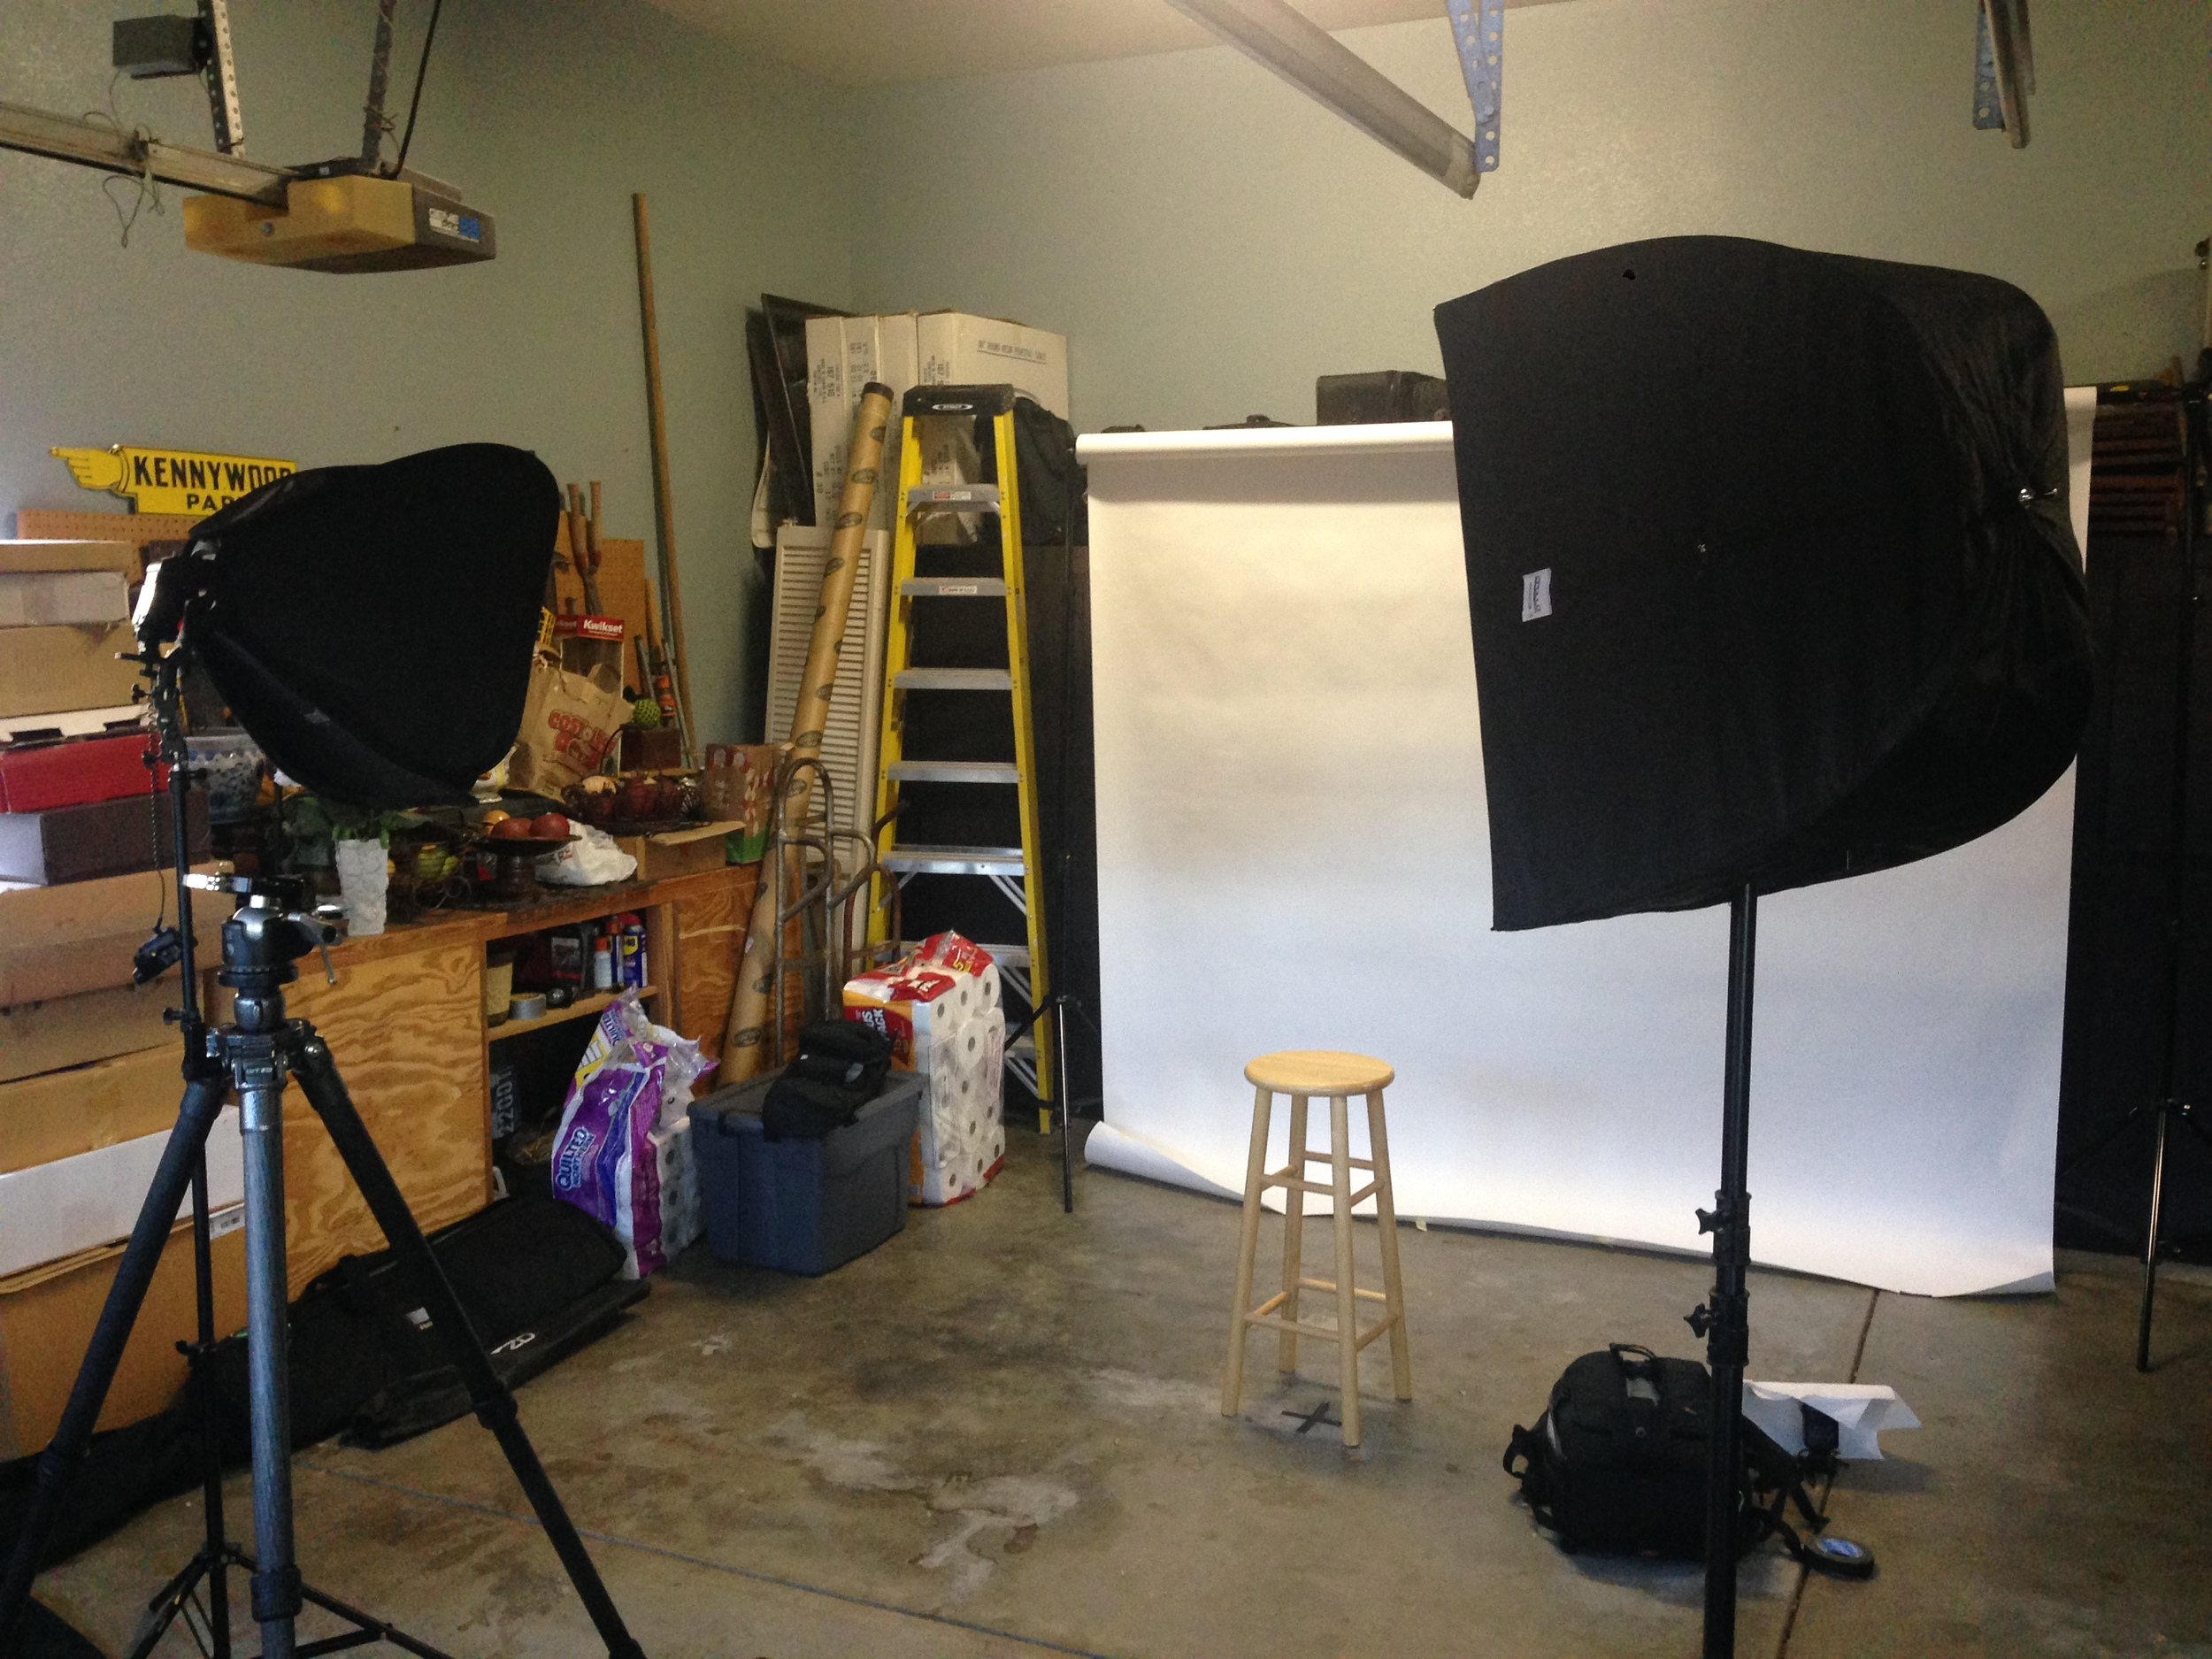 Here's what the setup looked like without anybody standing in for a photo. Keep in mind that in this photo I haven't yet placed the flash behind the stool aimed at the background. You can see it all ready to go off to the right on the floor, but that's not the place where I used it.